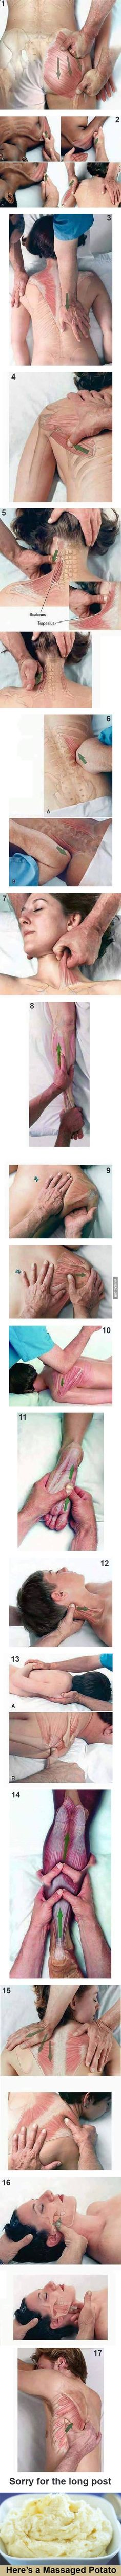 How to give a great massage - 9GAG Morehttp://9gag.com/gag/amrBOY4?ref=ios.s.others